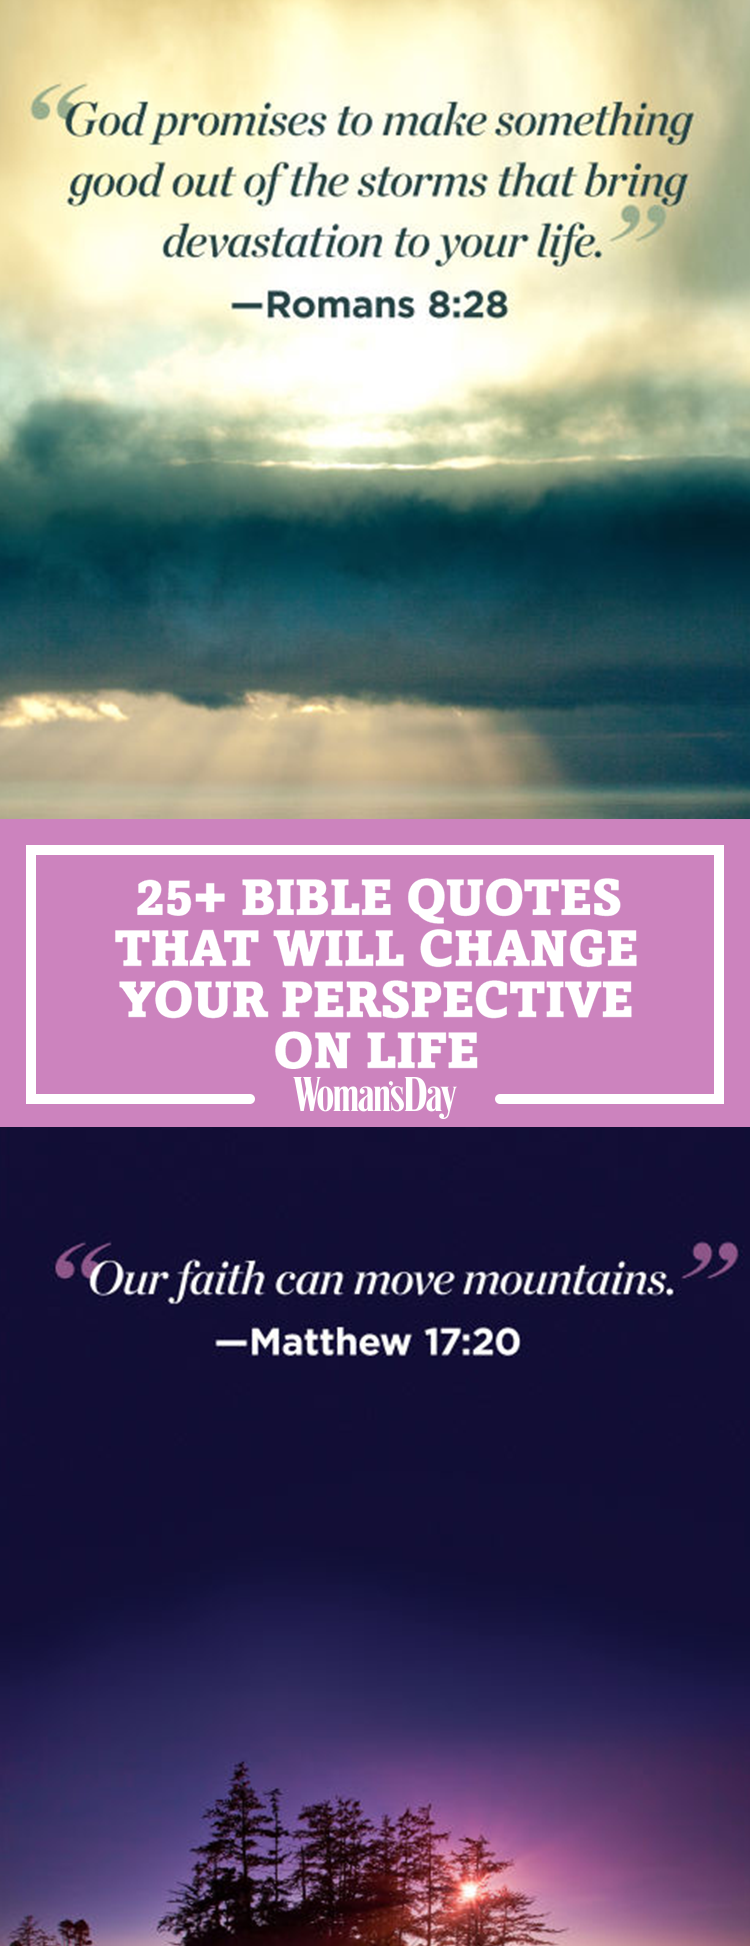 Bible Life Quotes 26 Inspirational Bible Quotes That Will Change Your Perspective On